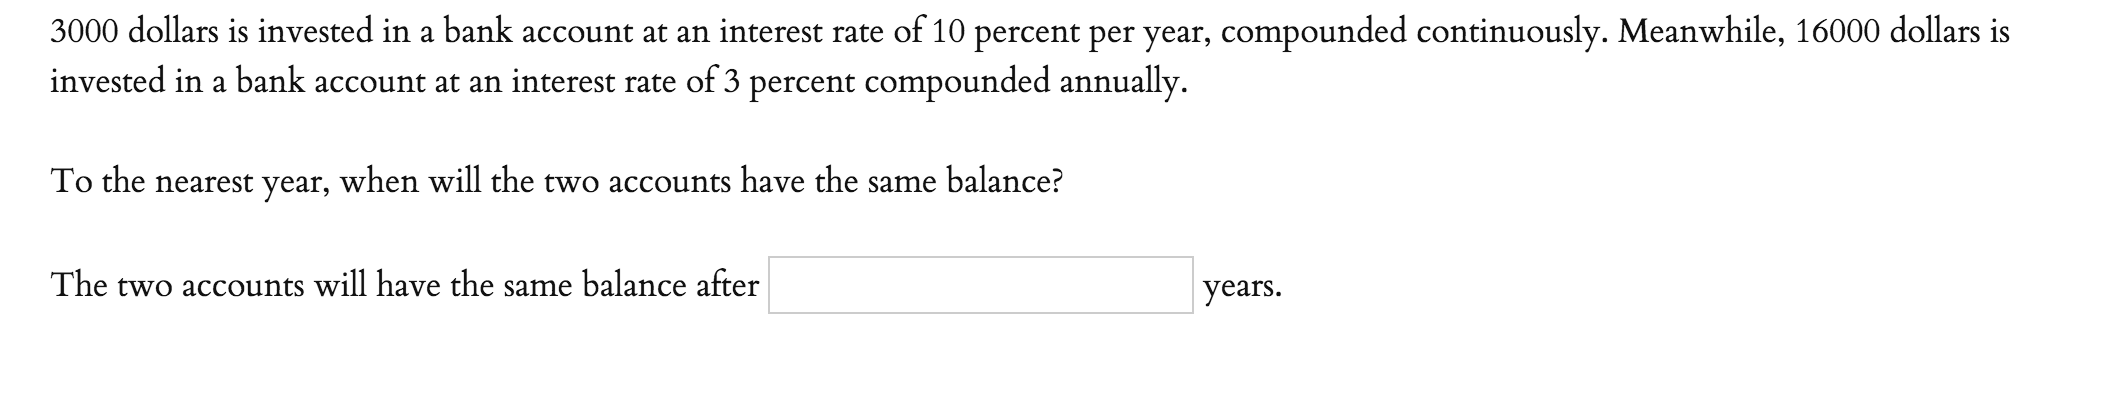 3000 dollars is invested in a bank account at an interest rate of 10 percent per year, compounded continuously. Meanwhile, 16000 dollars is invested in a bank account at an interest rate of 3 percent compounded annually. To the nearest year, when will the two accounts have the same balance? The two accounts will have the same balance after years.